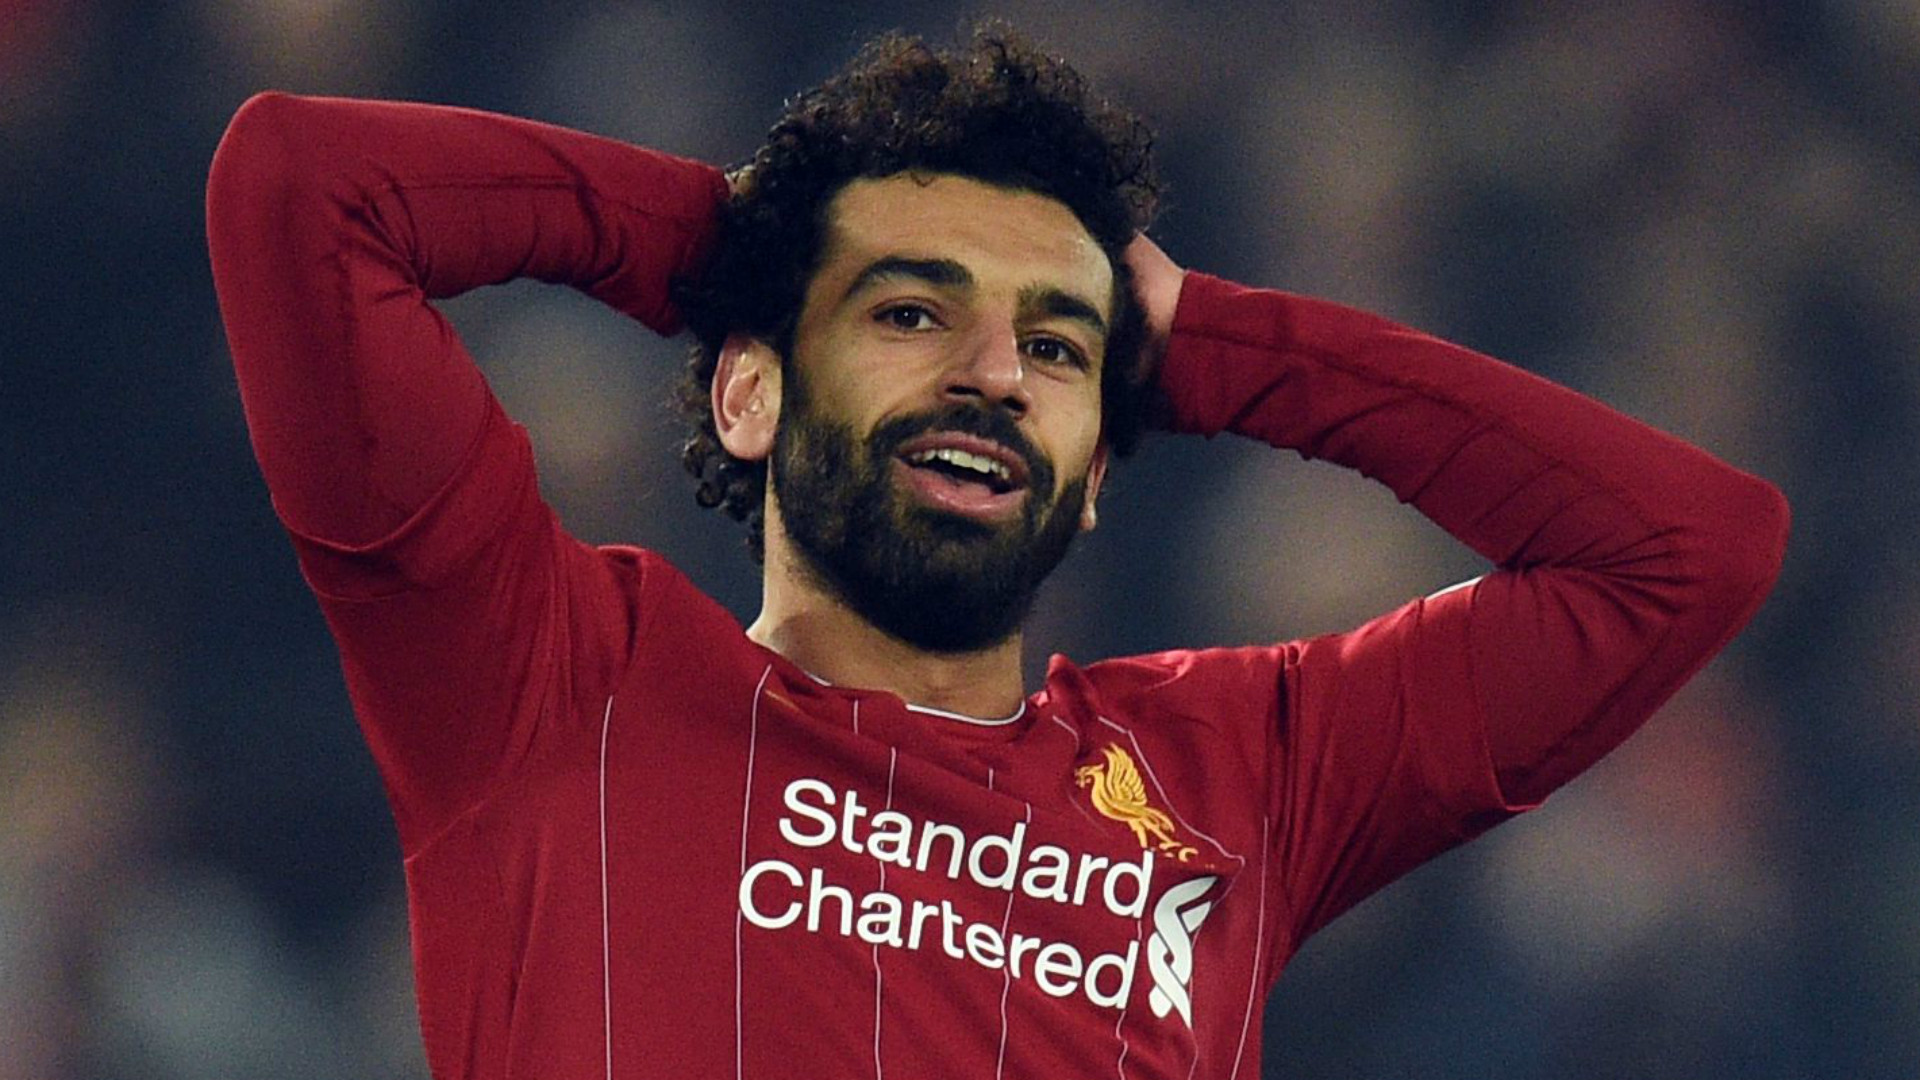 Salah's ankle injury is still slowing him down at Liverpool - Thompson